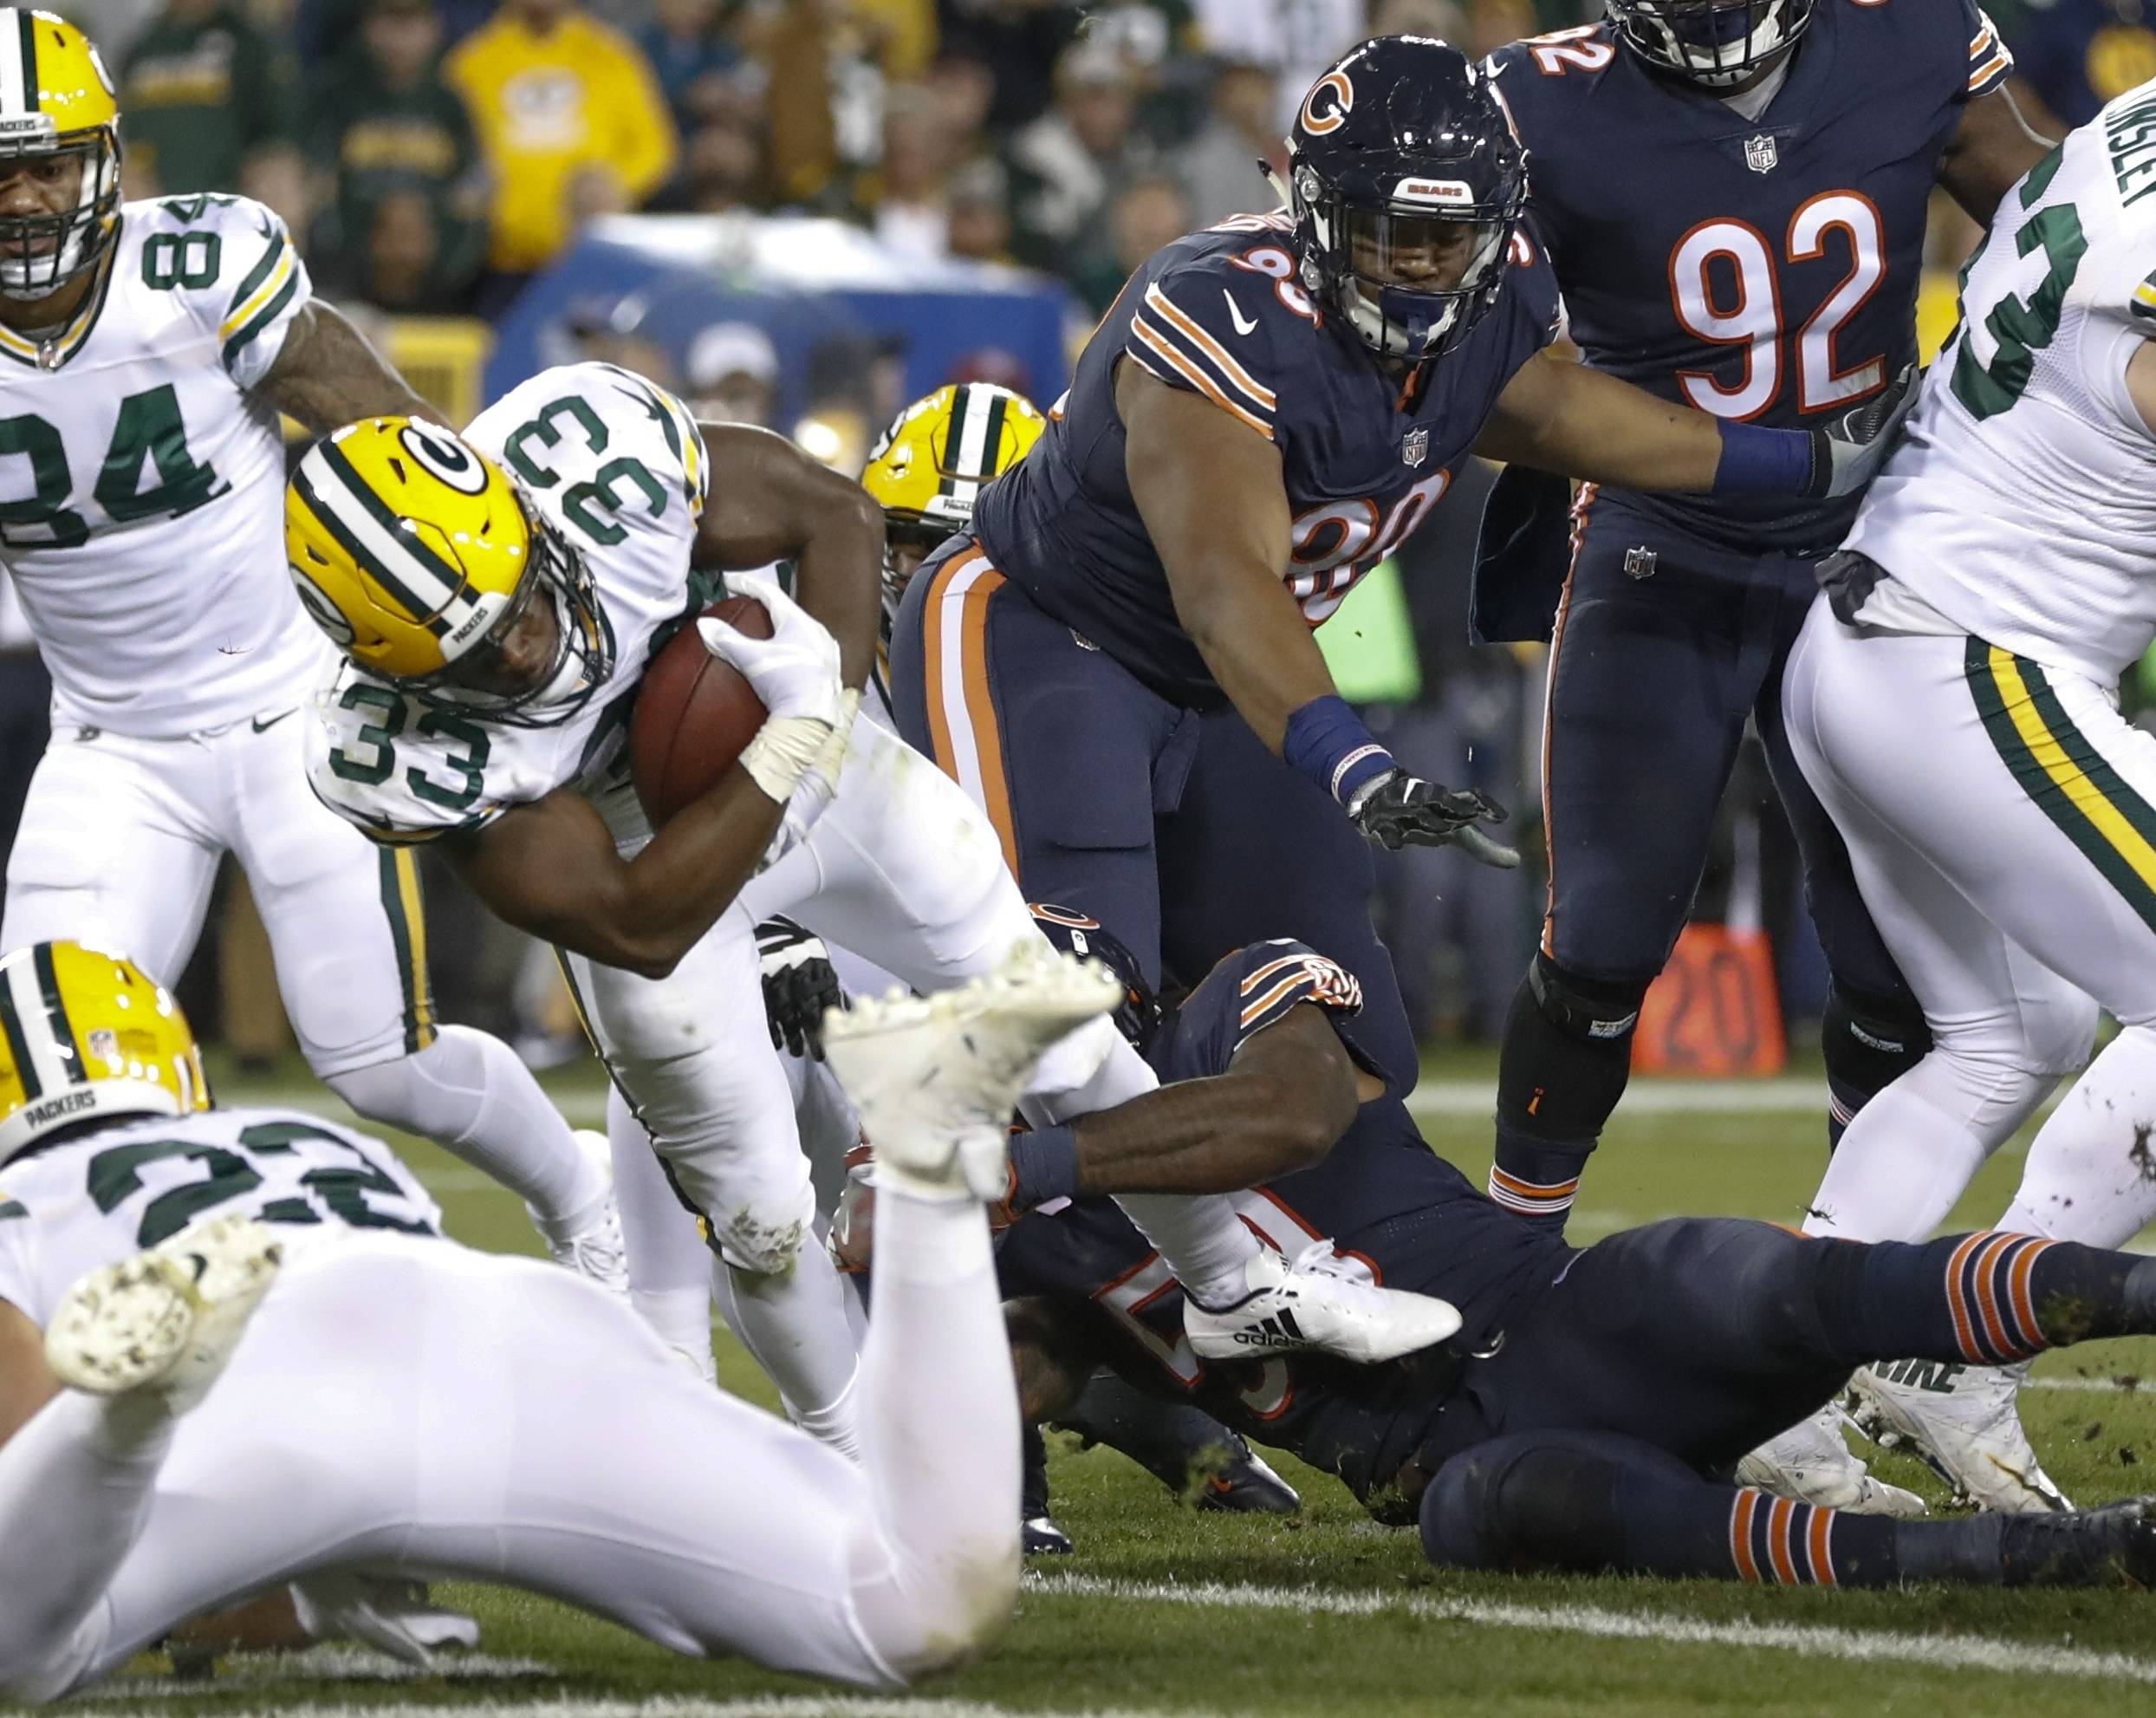 Bears suffer 35-14 loss to Packers